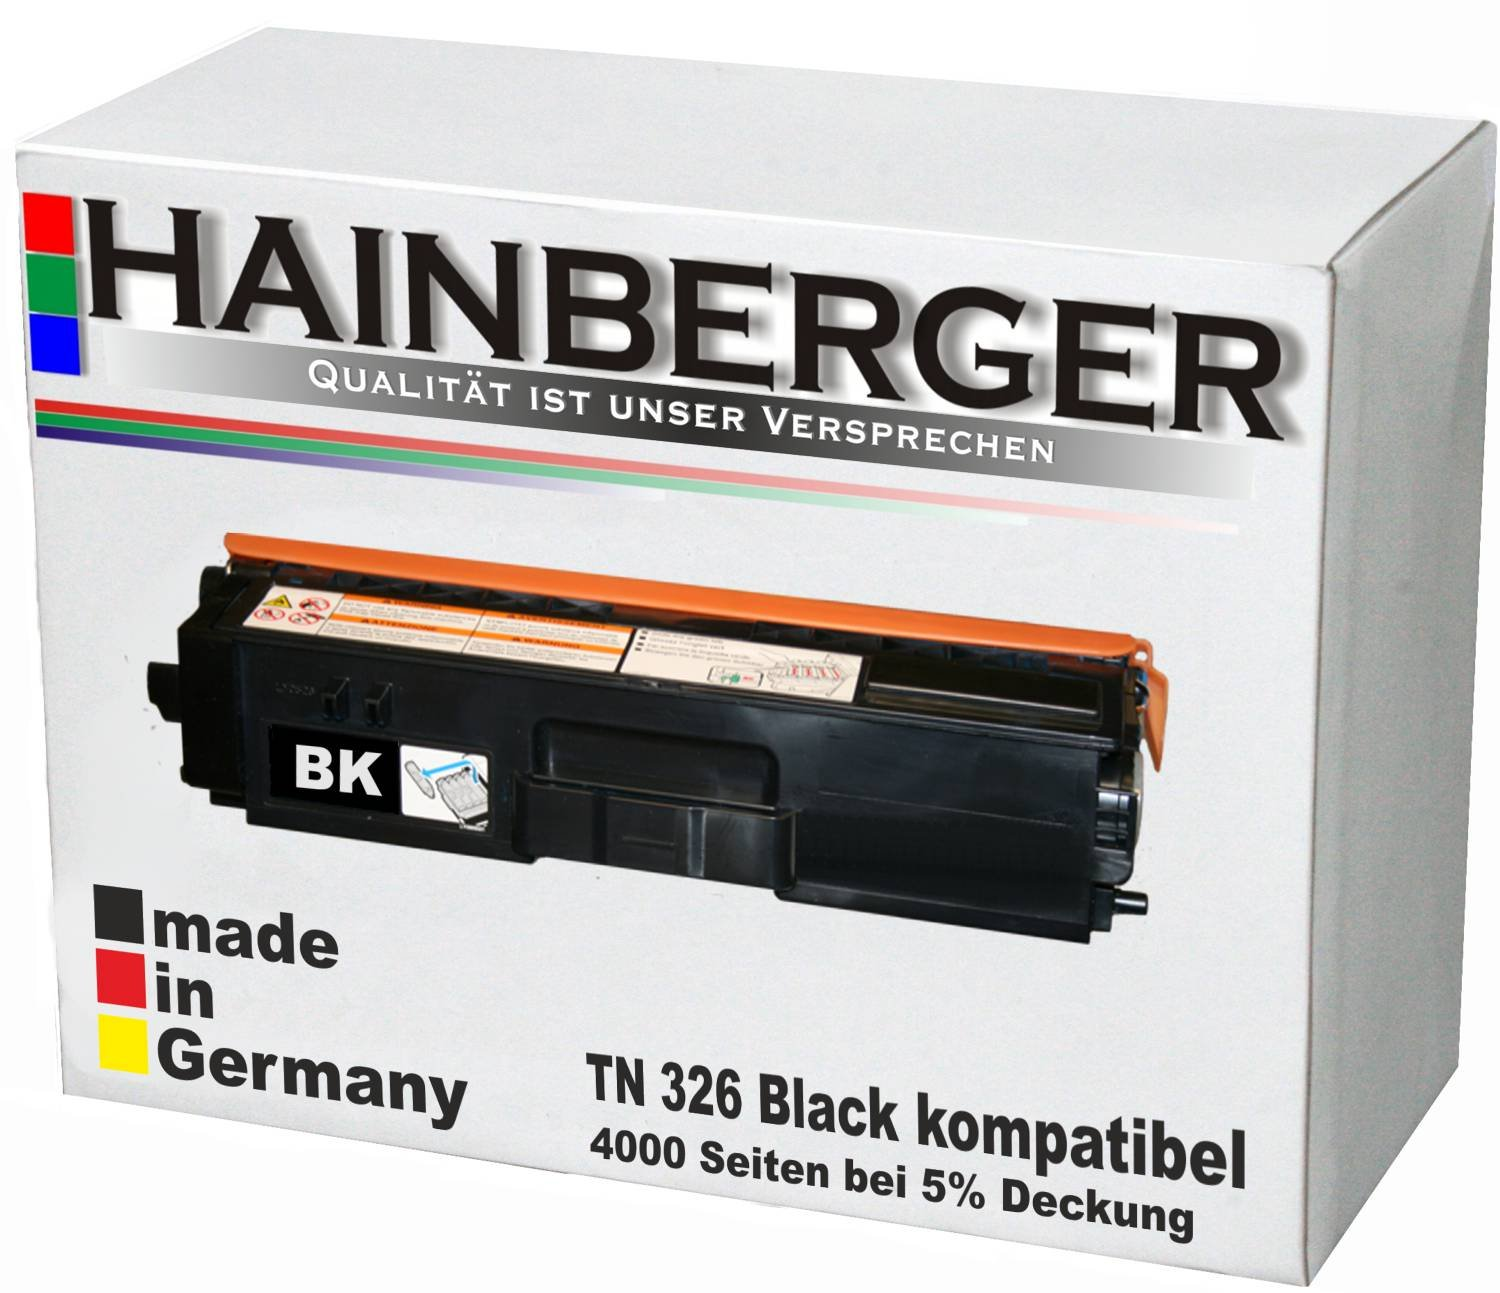 Hainberger-Toner-Black-fr-Brother-TN-326-schwarz-4000-Seiten-kompatibel-zu-TN-321-326-Geeignet-fr-Brother-HL-L8250CDN